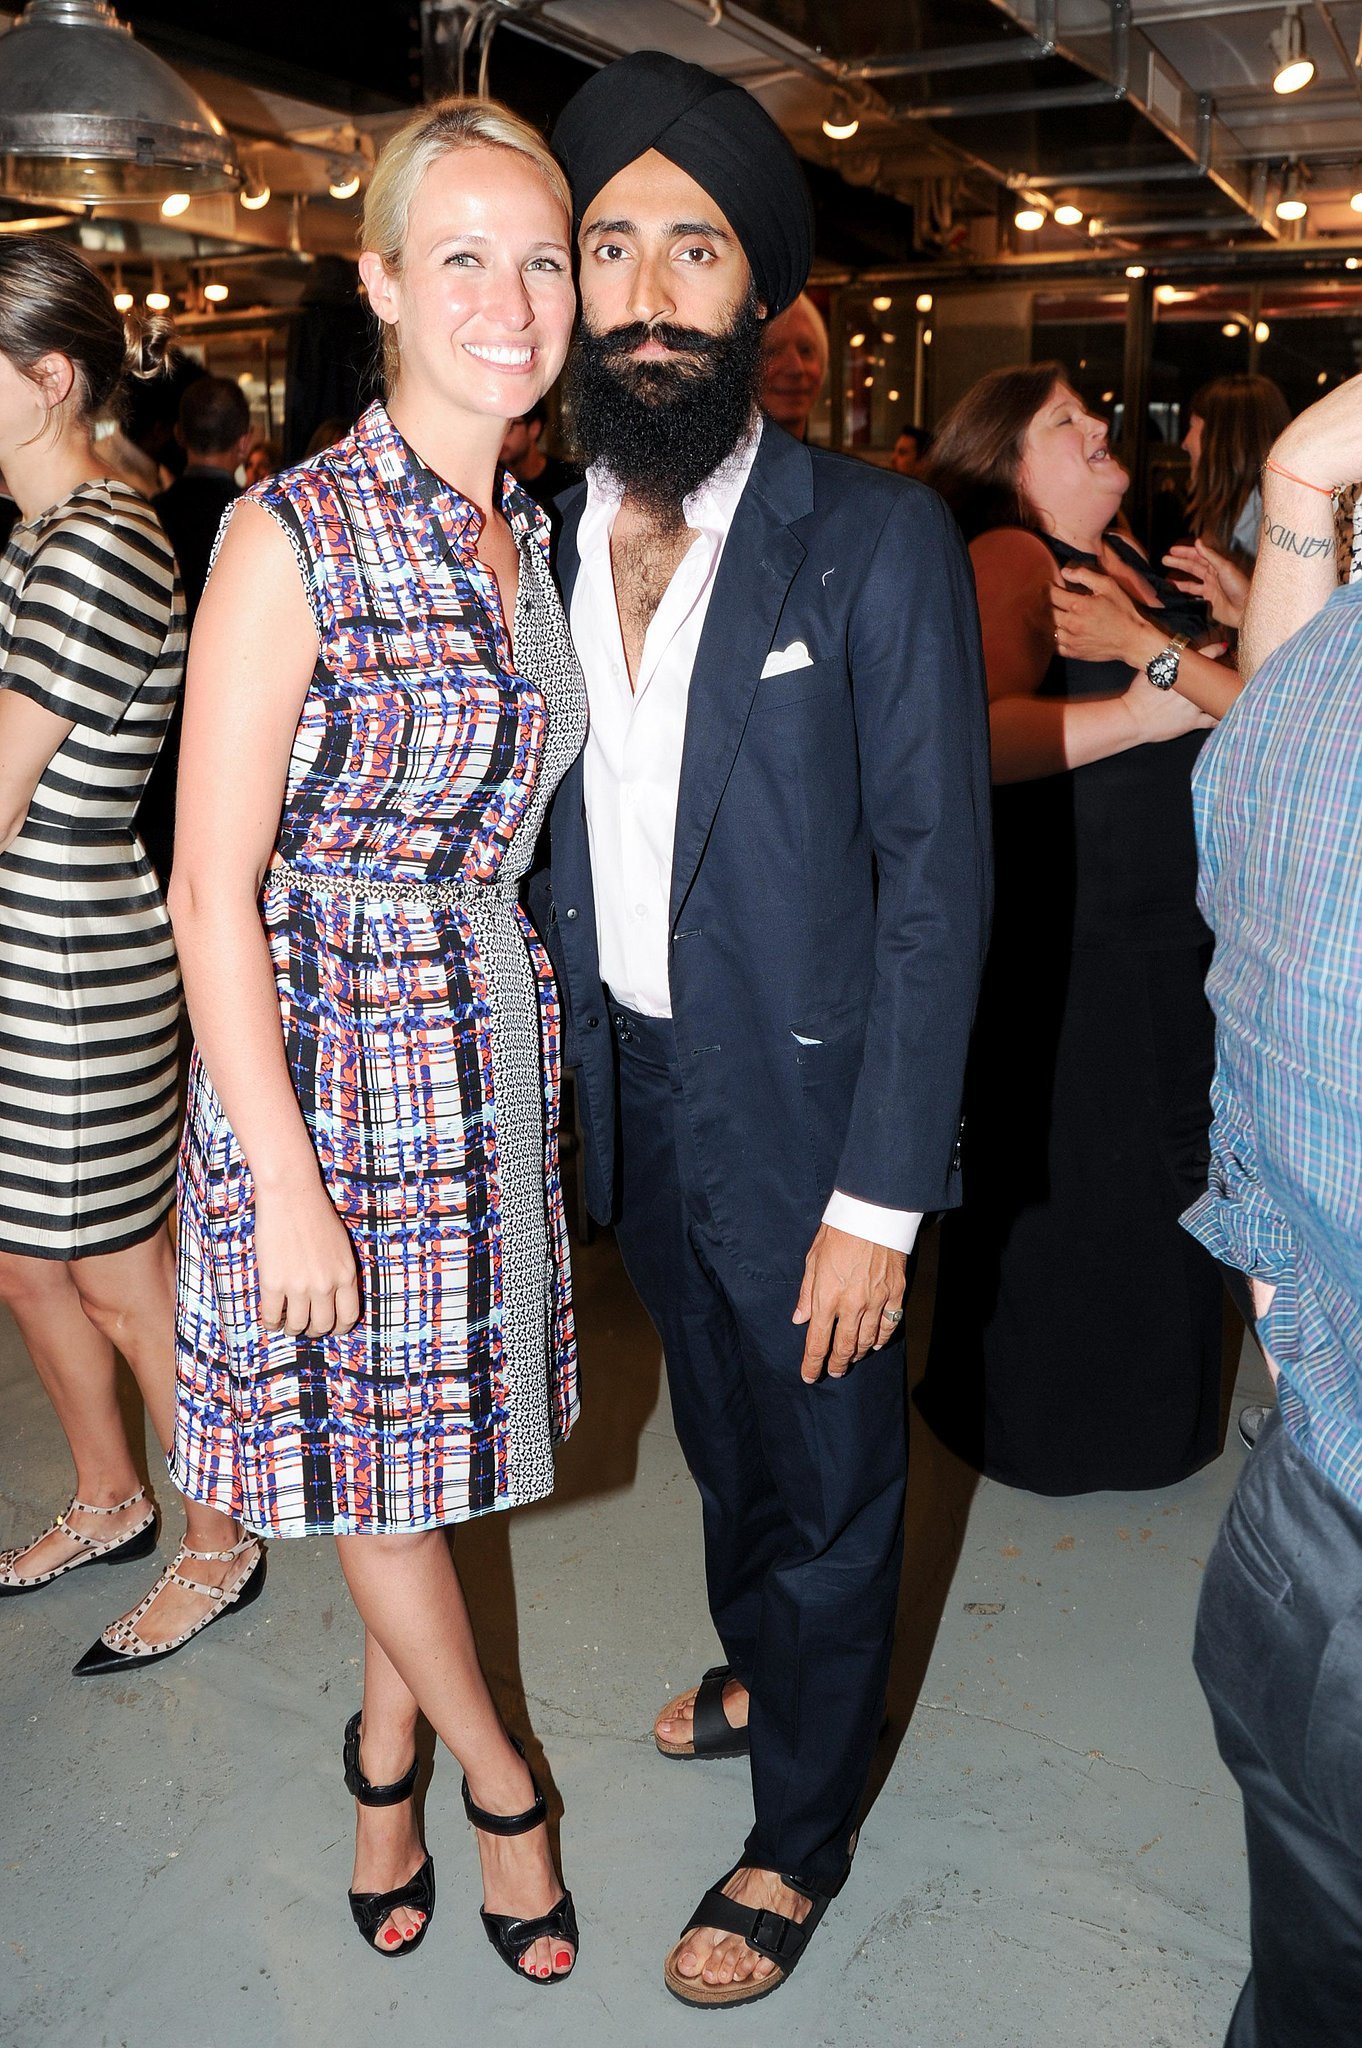 Misha Nonoo was a vibrant addition to Waris Ahluwalia's pared-down designs at the CFDA/Vogue Fashion Fund fete for this year's finalis